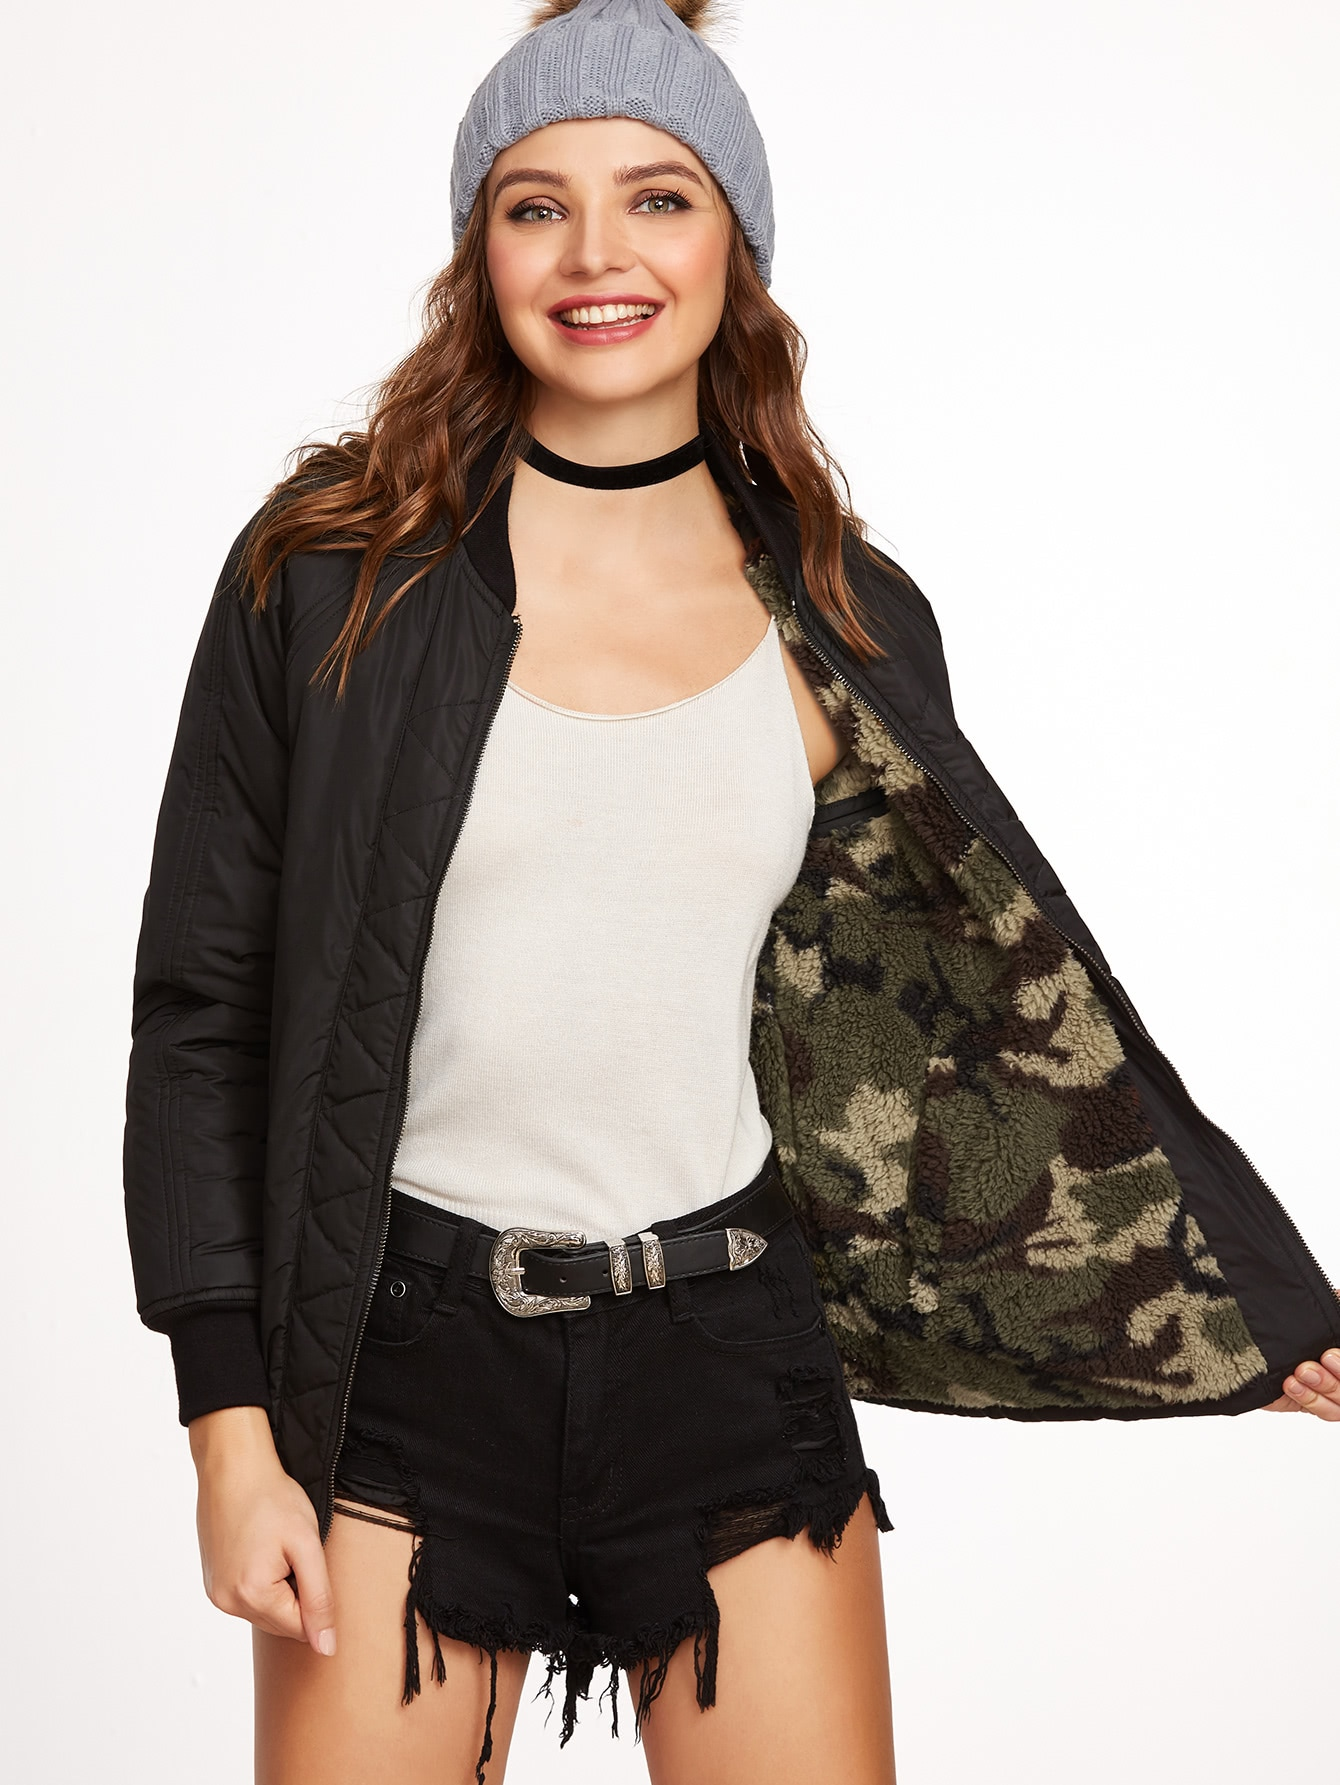 Black Camo Fluffy Fleece Lined Double Sided JacketBlack Camo Fluffy Fleece Lined Double Sided Jacket<br><br>color: Black<br>size: L,M,S,XS